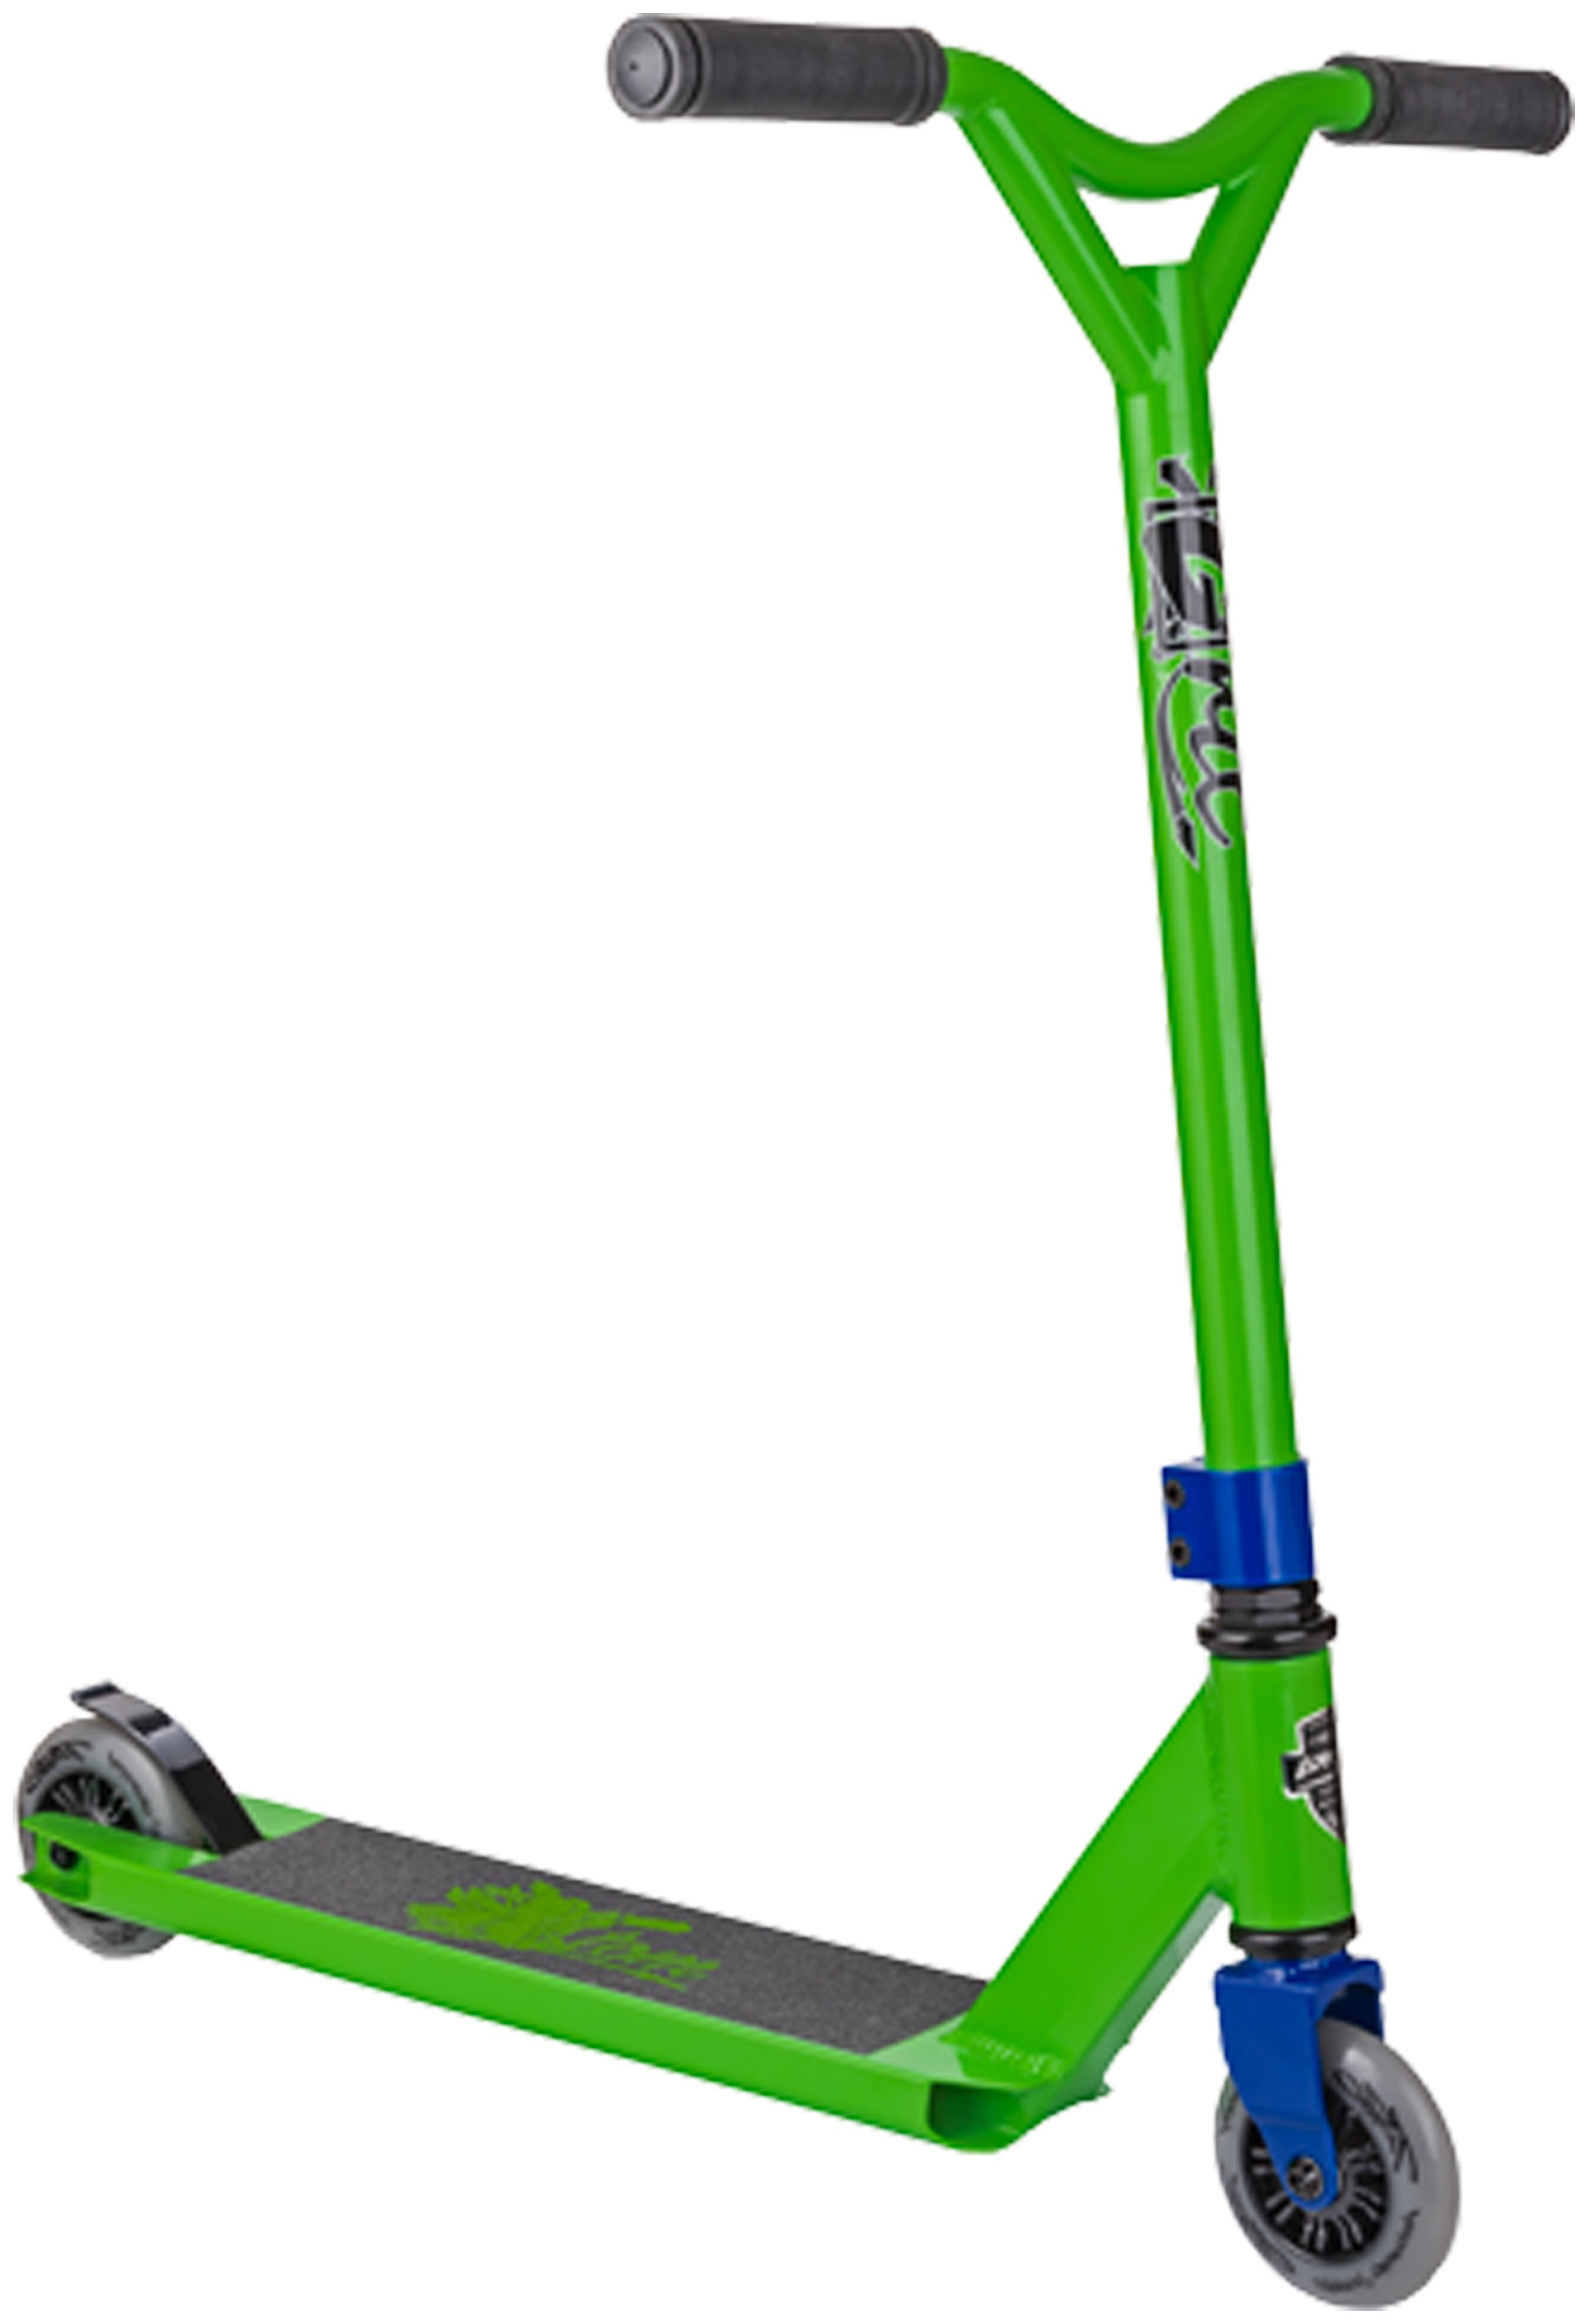 Image of Grit Atom - Scooter - Green